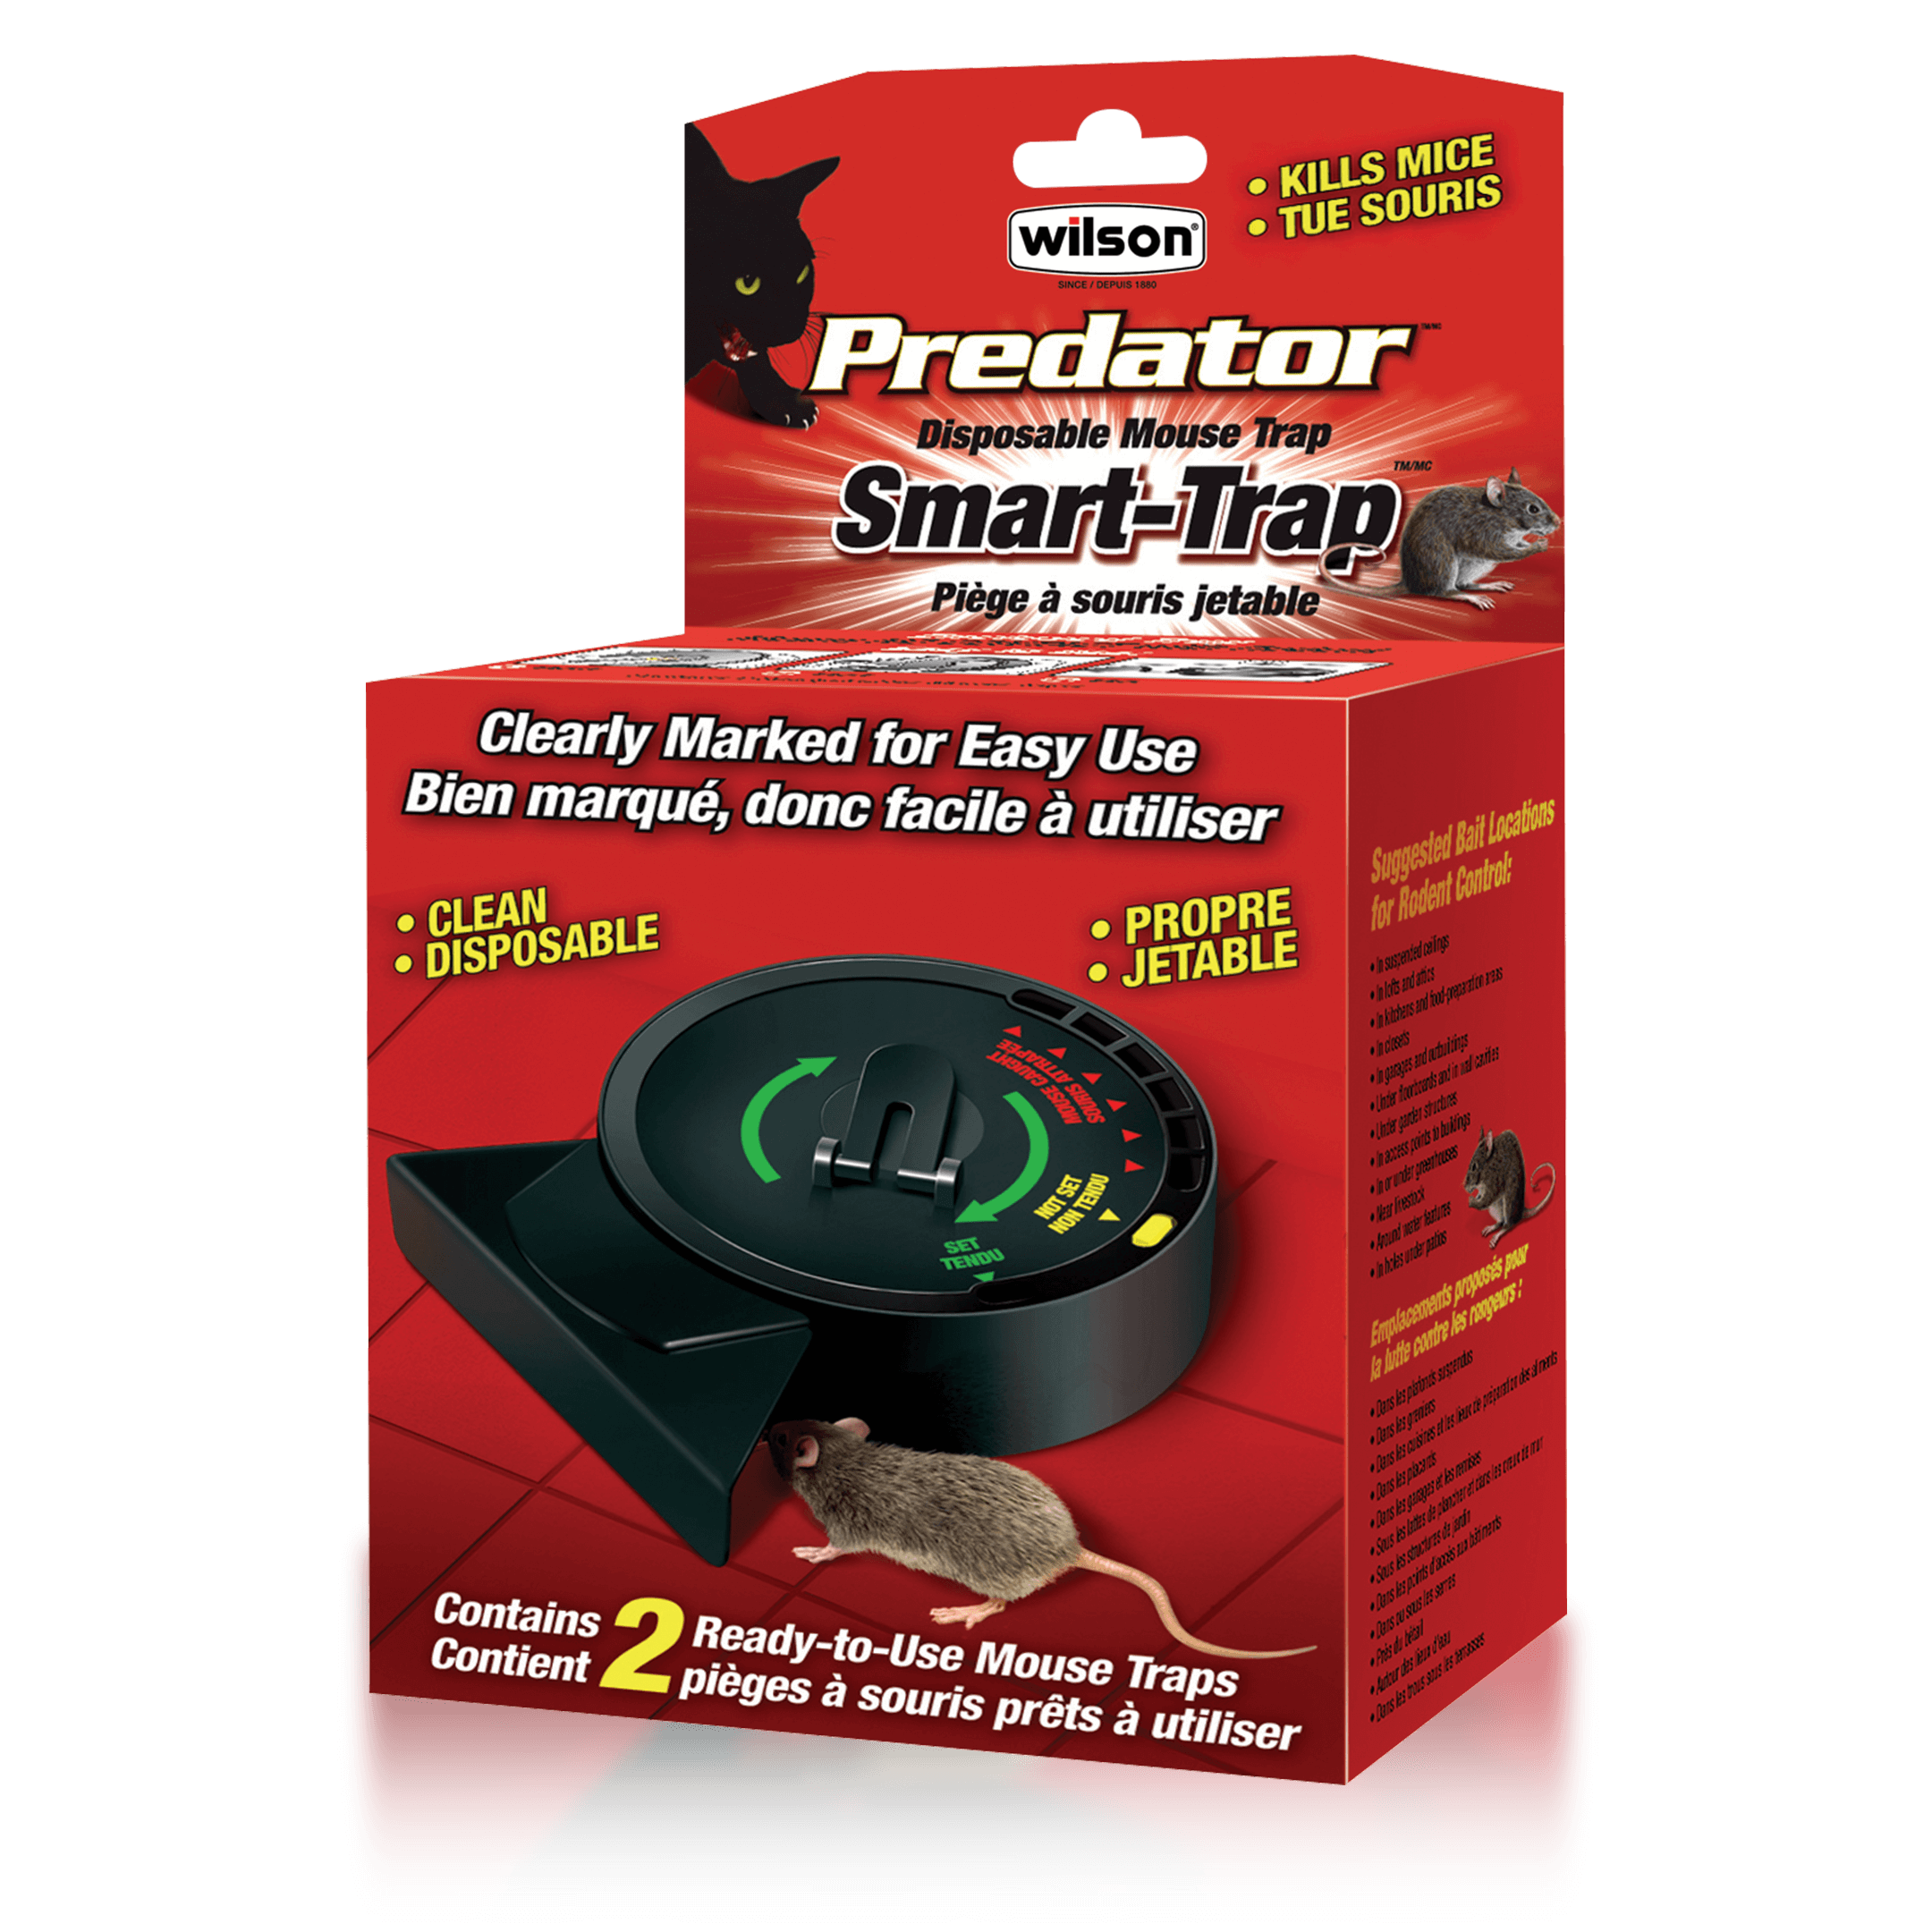 wilson predator mouse bait station review